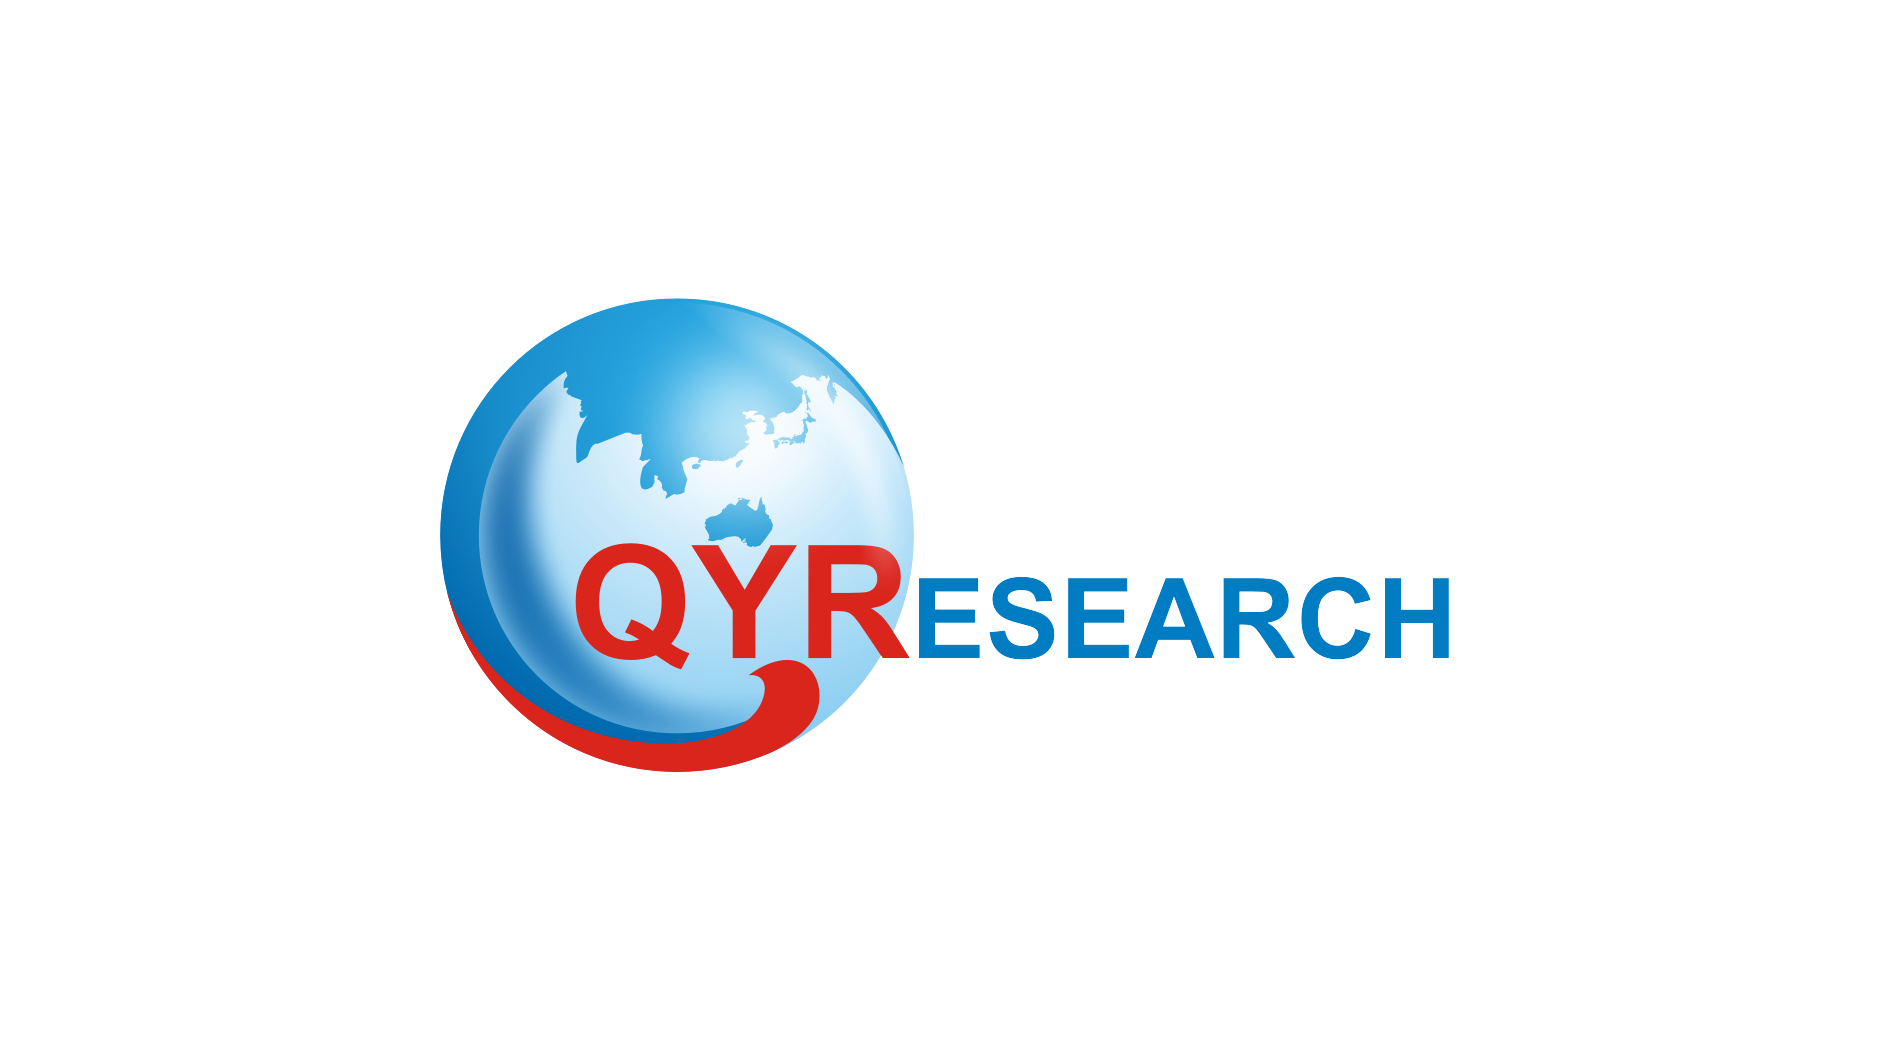 Biodegradable Polymers Market Report on EMEA (Europe, Middle East and Africa) 2017